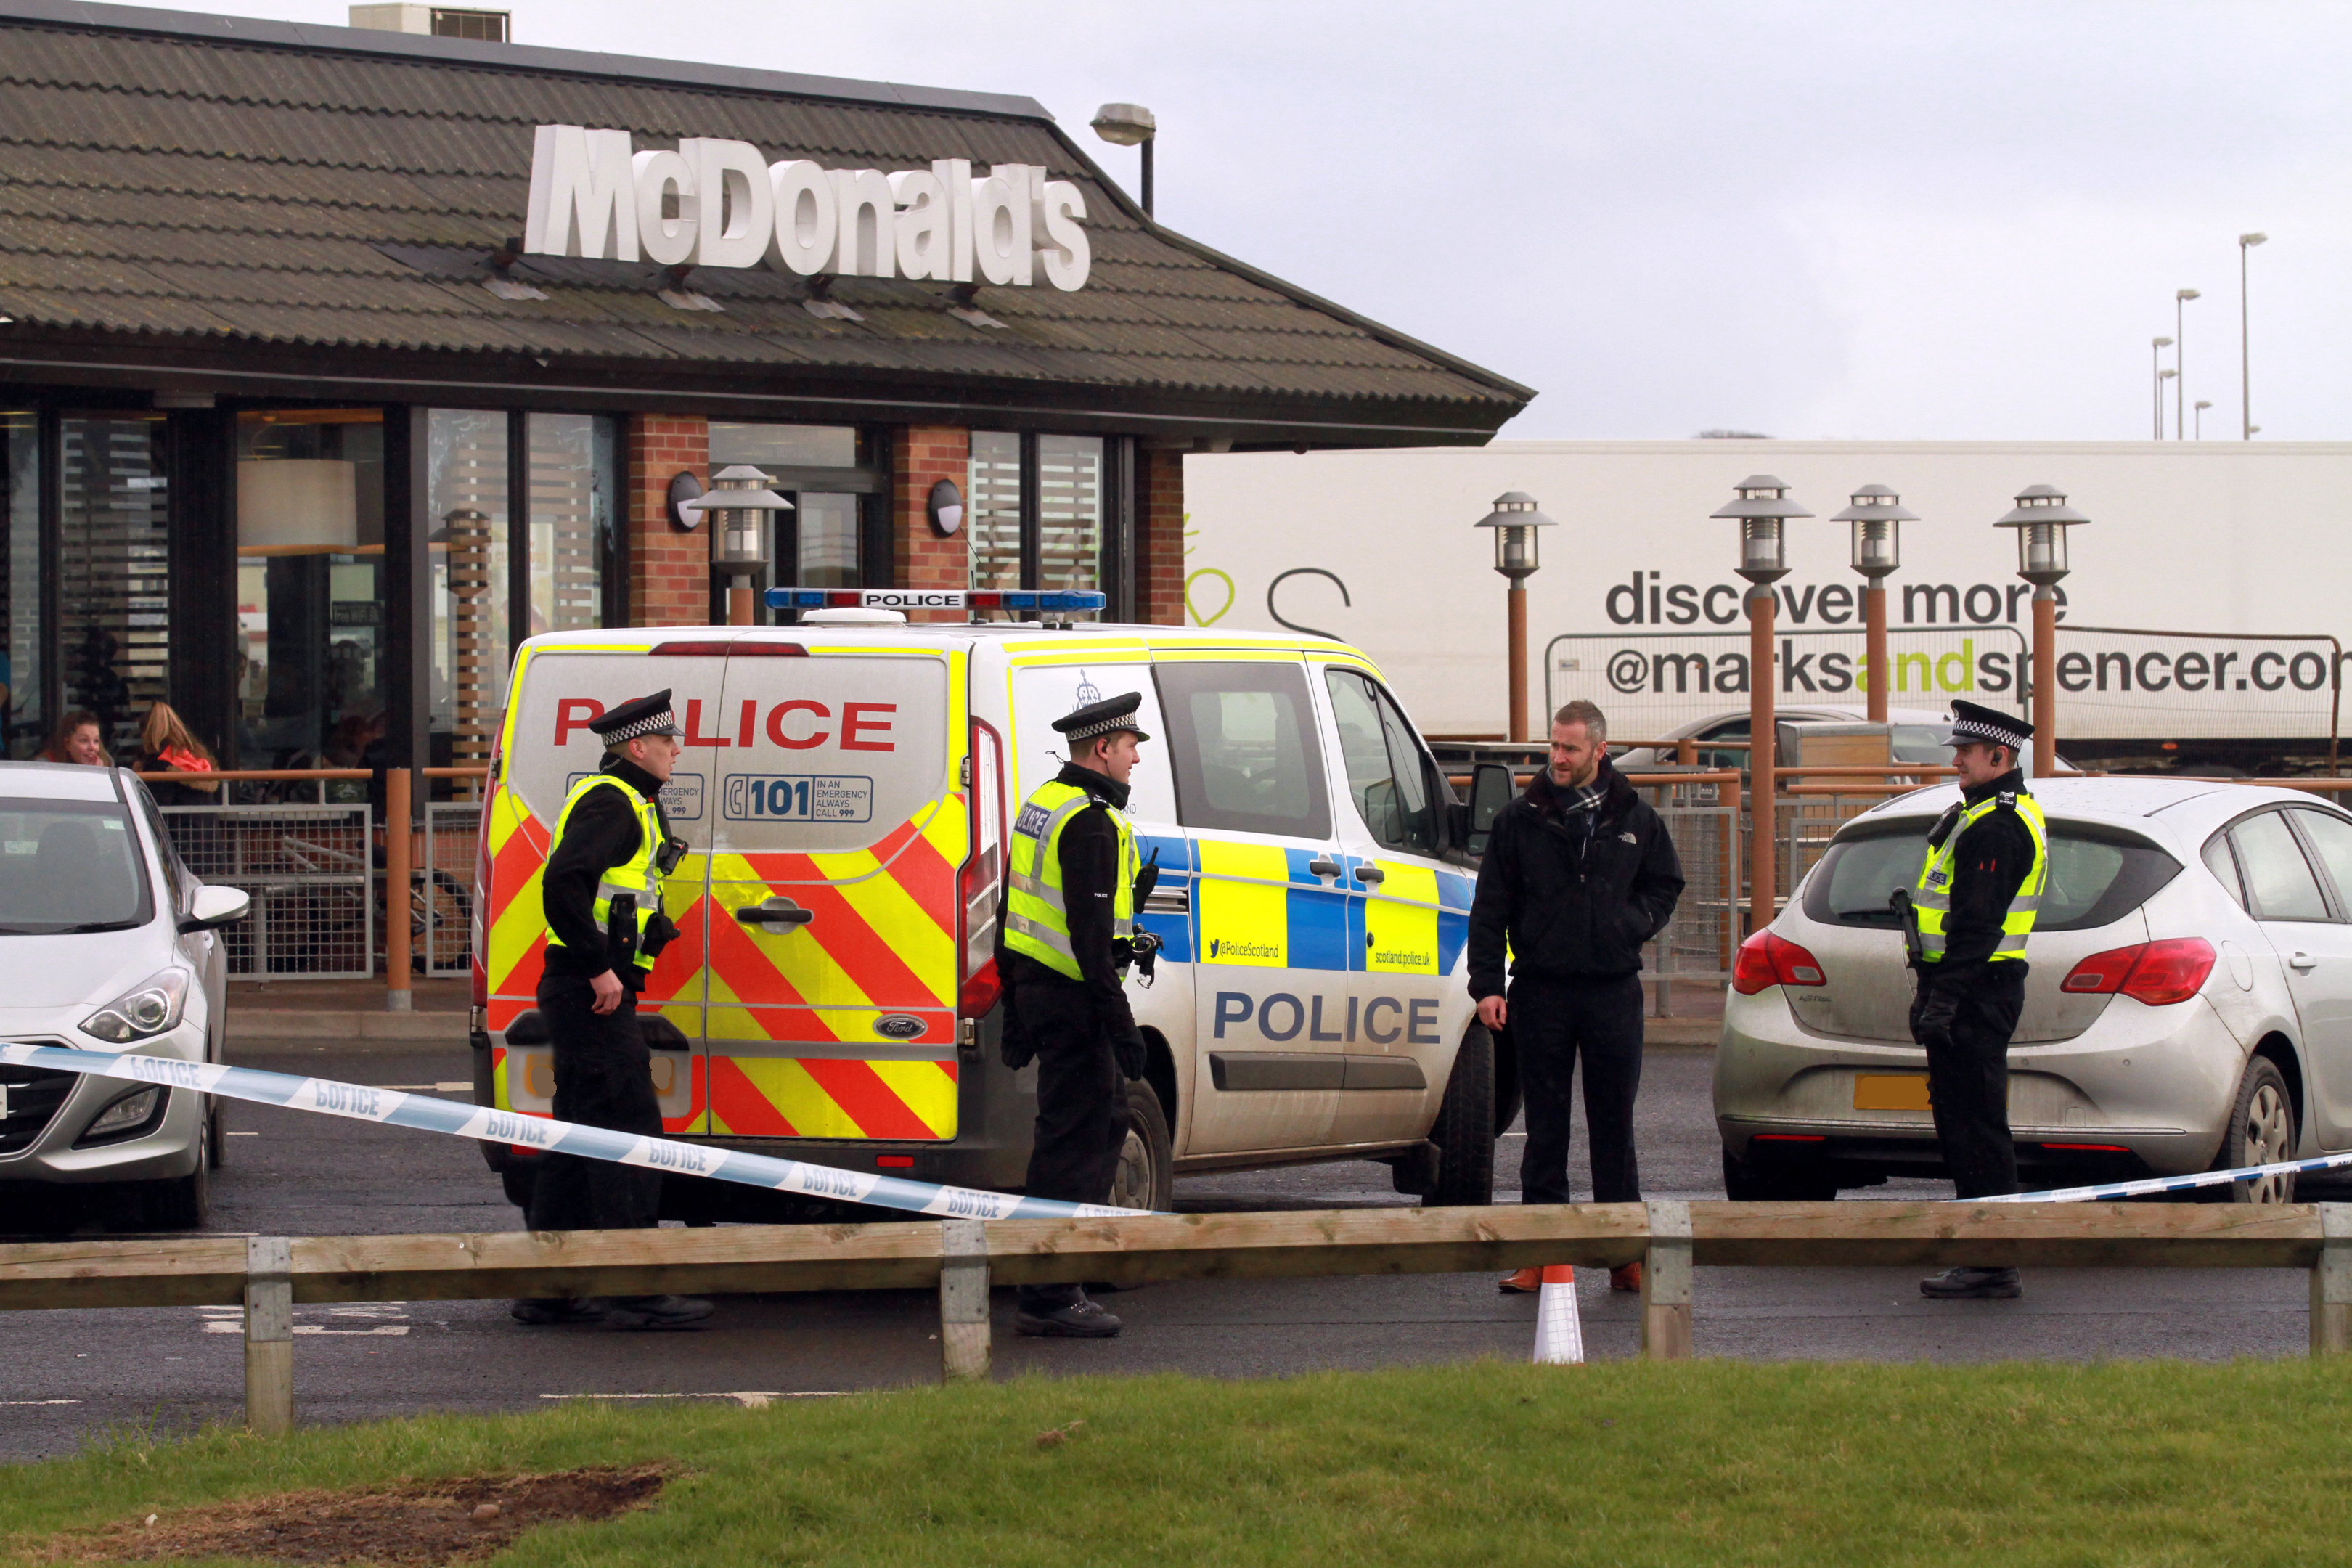 Police at McDonald's in Arbroath, where the gang were caught